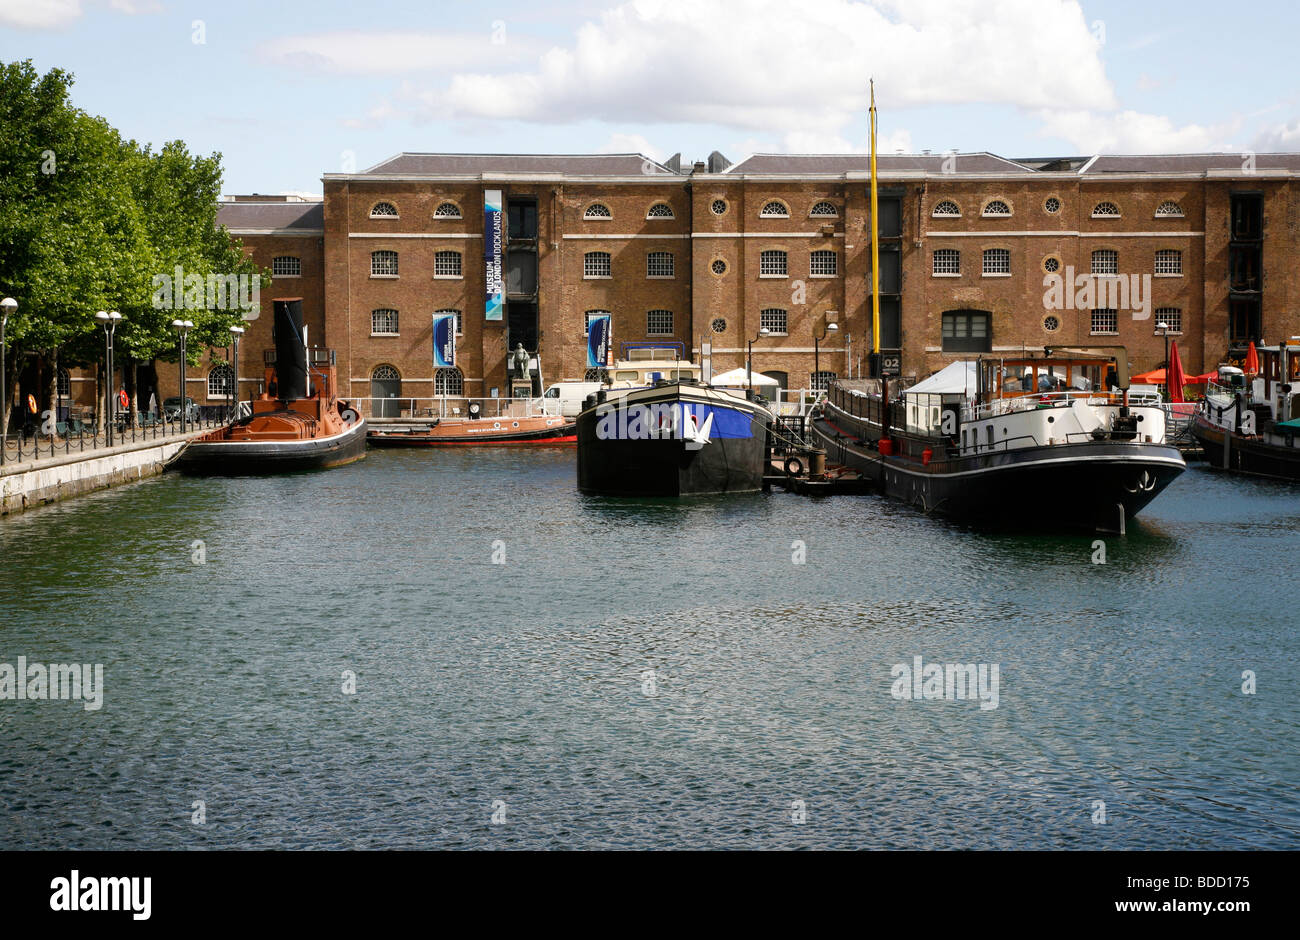 Museum of Docklands on West India Dock North, Canary Wharf, London, UK - Stock Image